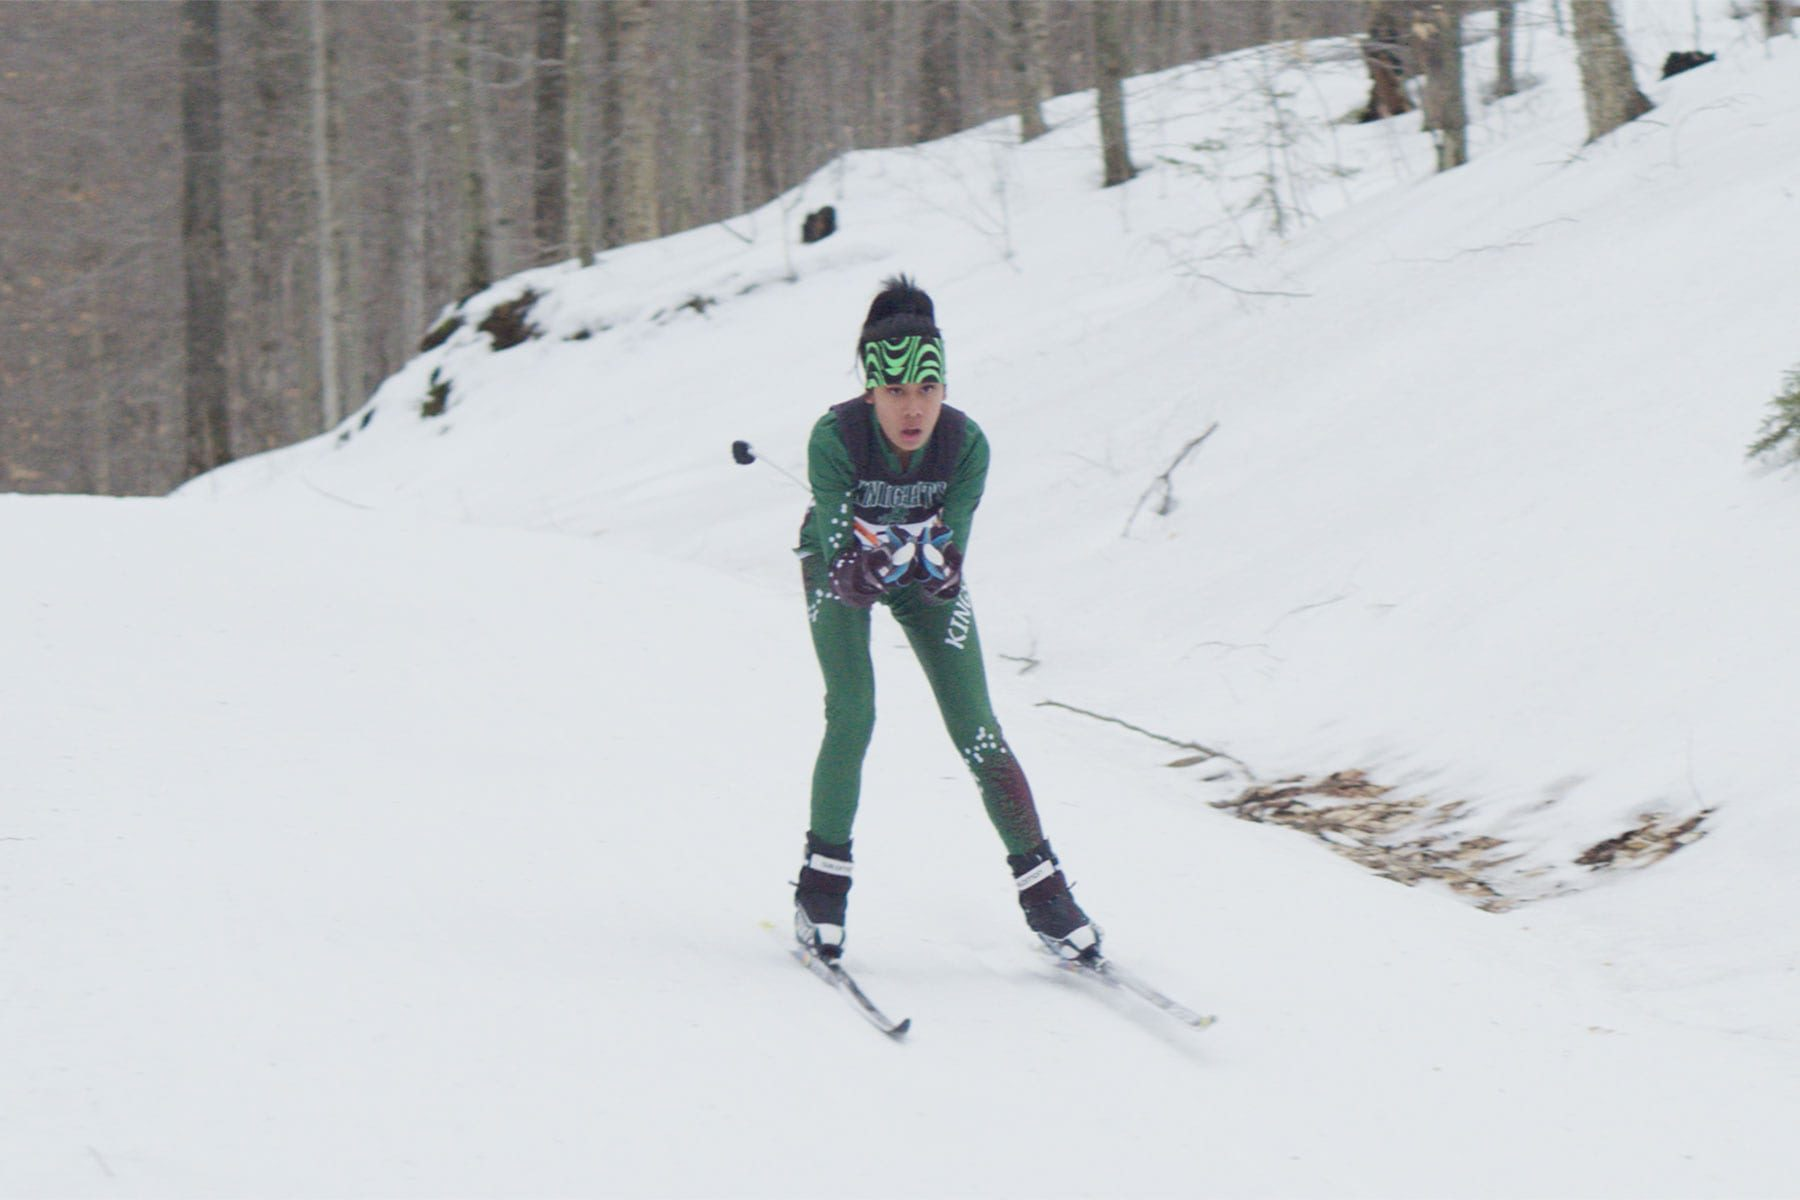 A girl skiing in a snowy forest.